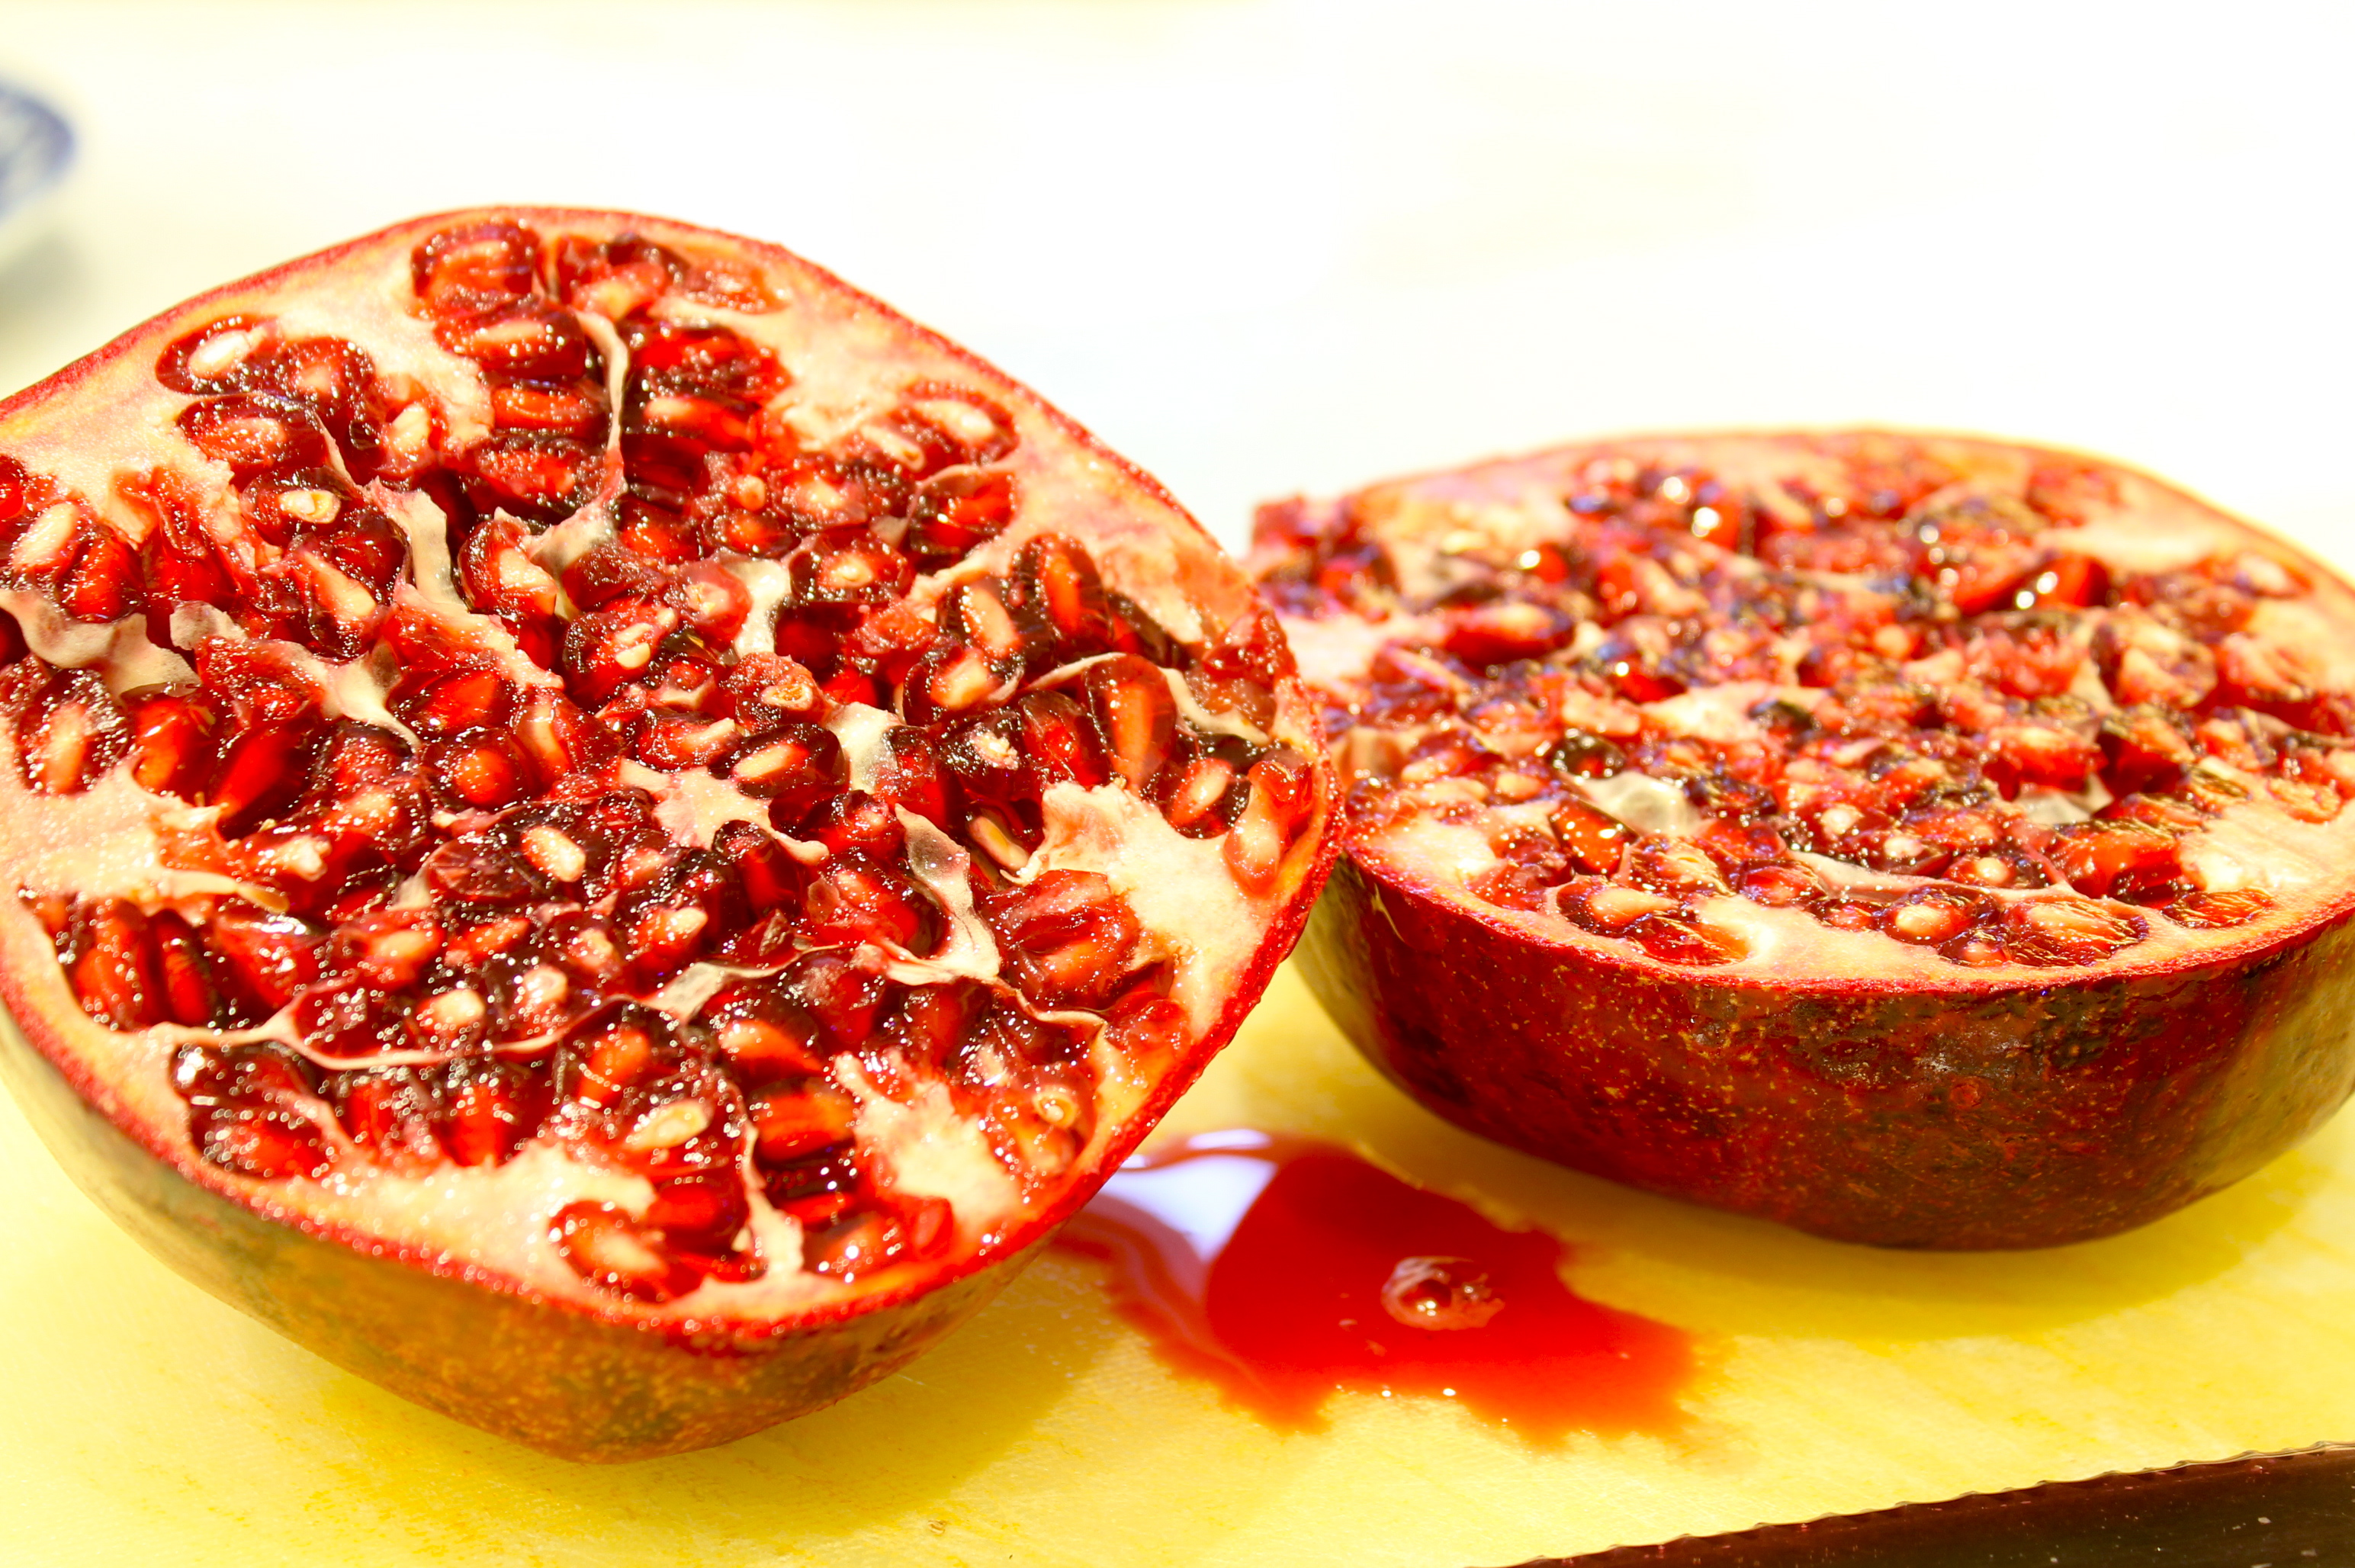 IMG 6889 - Removing Those Stubborn Pomegranate Seeds